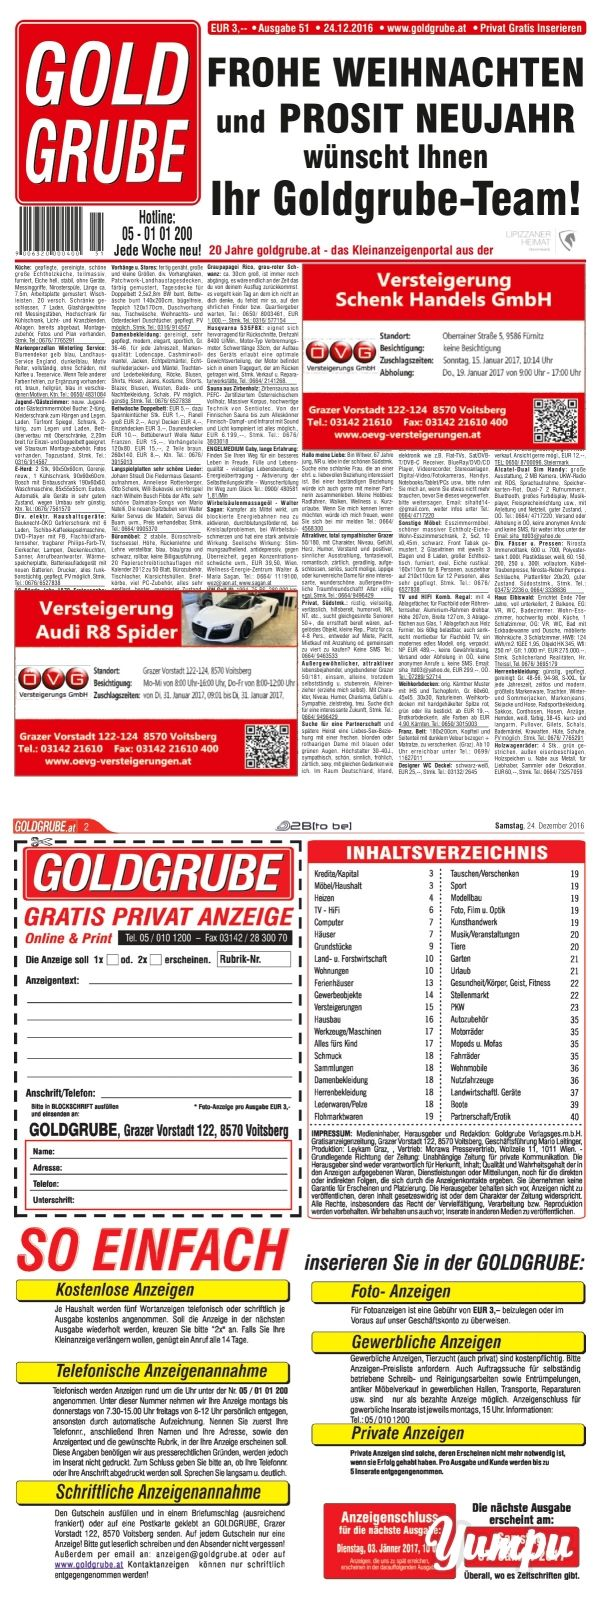 Goldgrube - Ausgabe 51 - Magazine with 48 pages: Privat Gratis Inserieren auf www.goldgrube.at